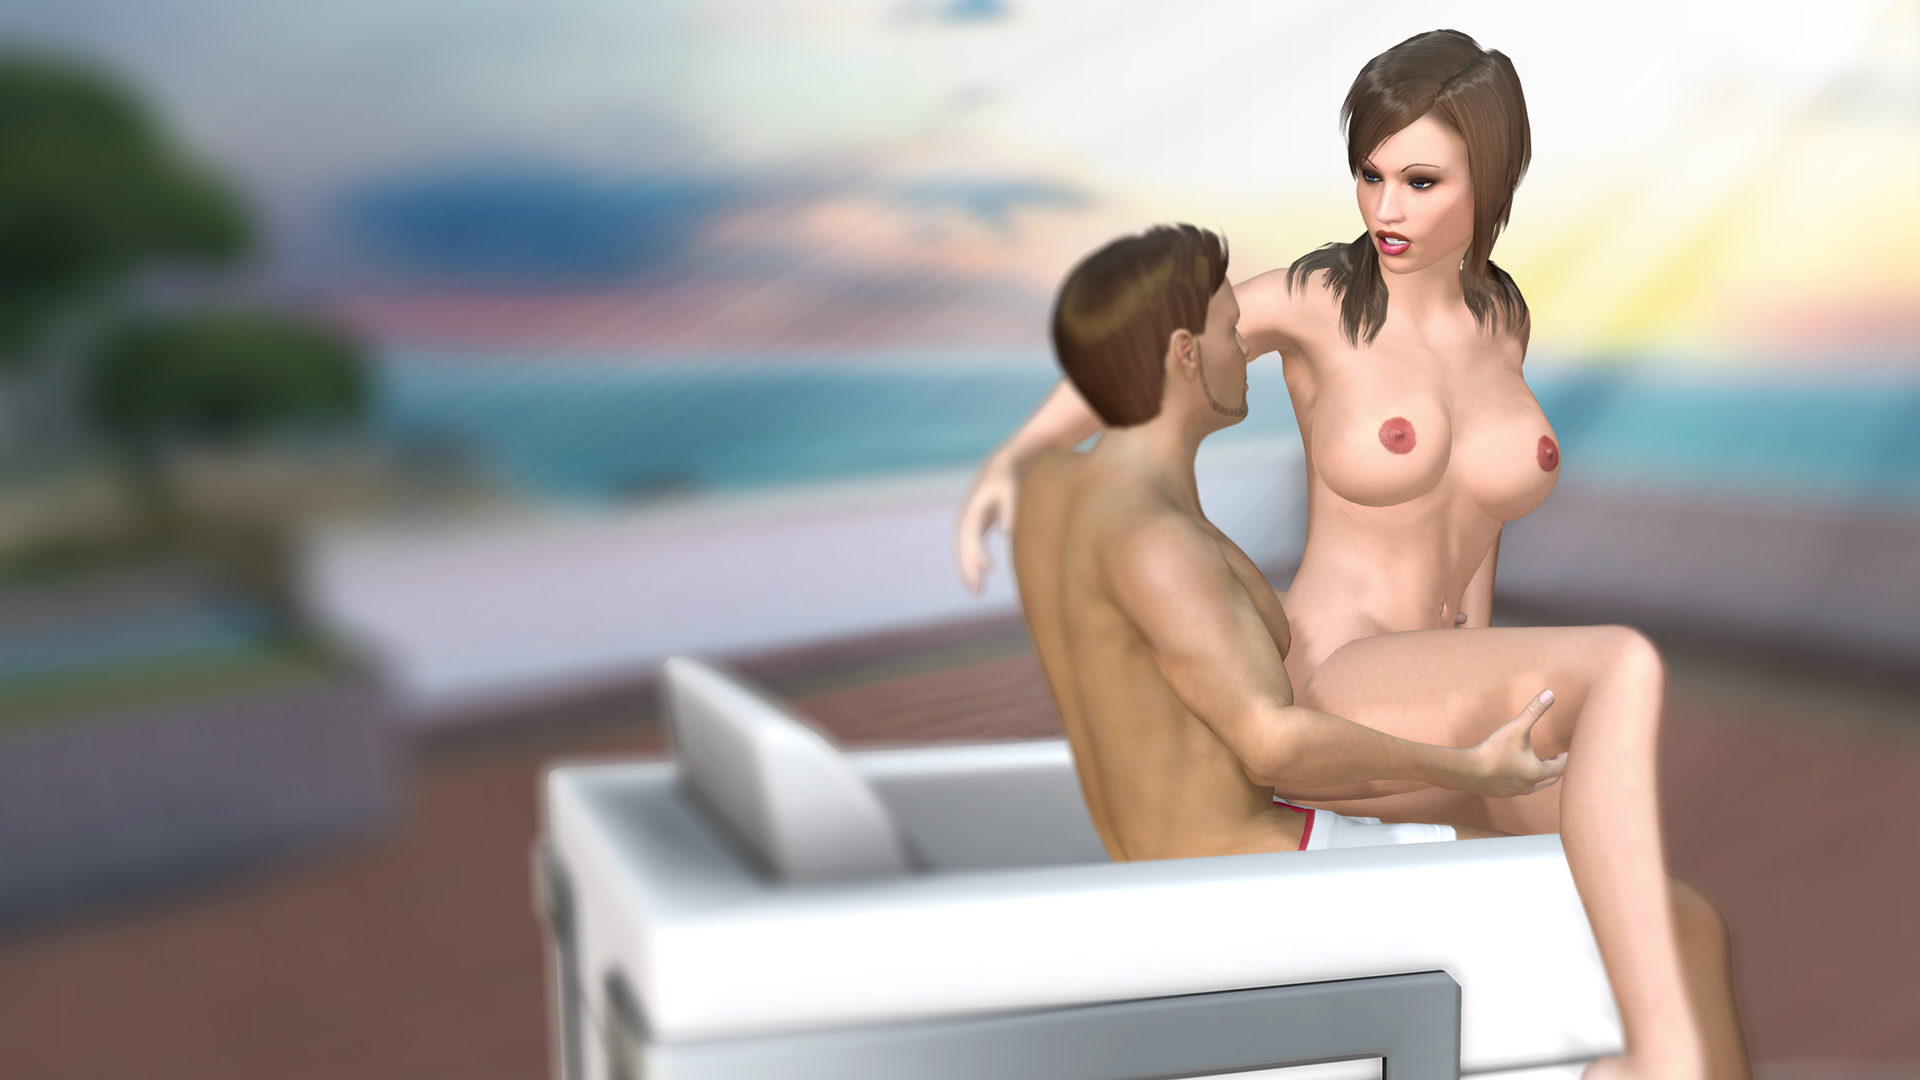 3d multiplayer sex games adult scene